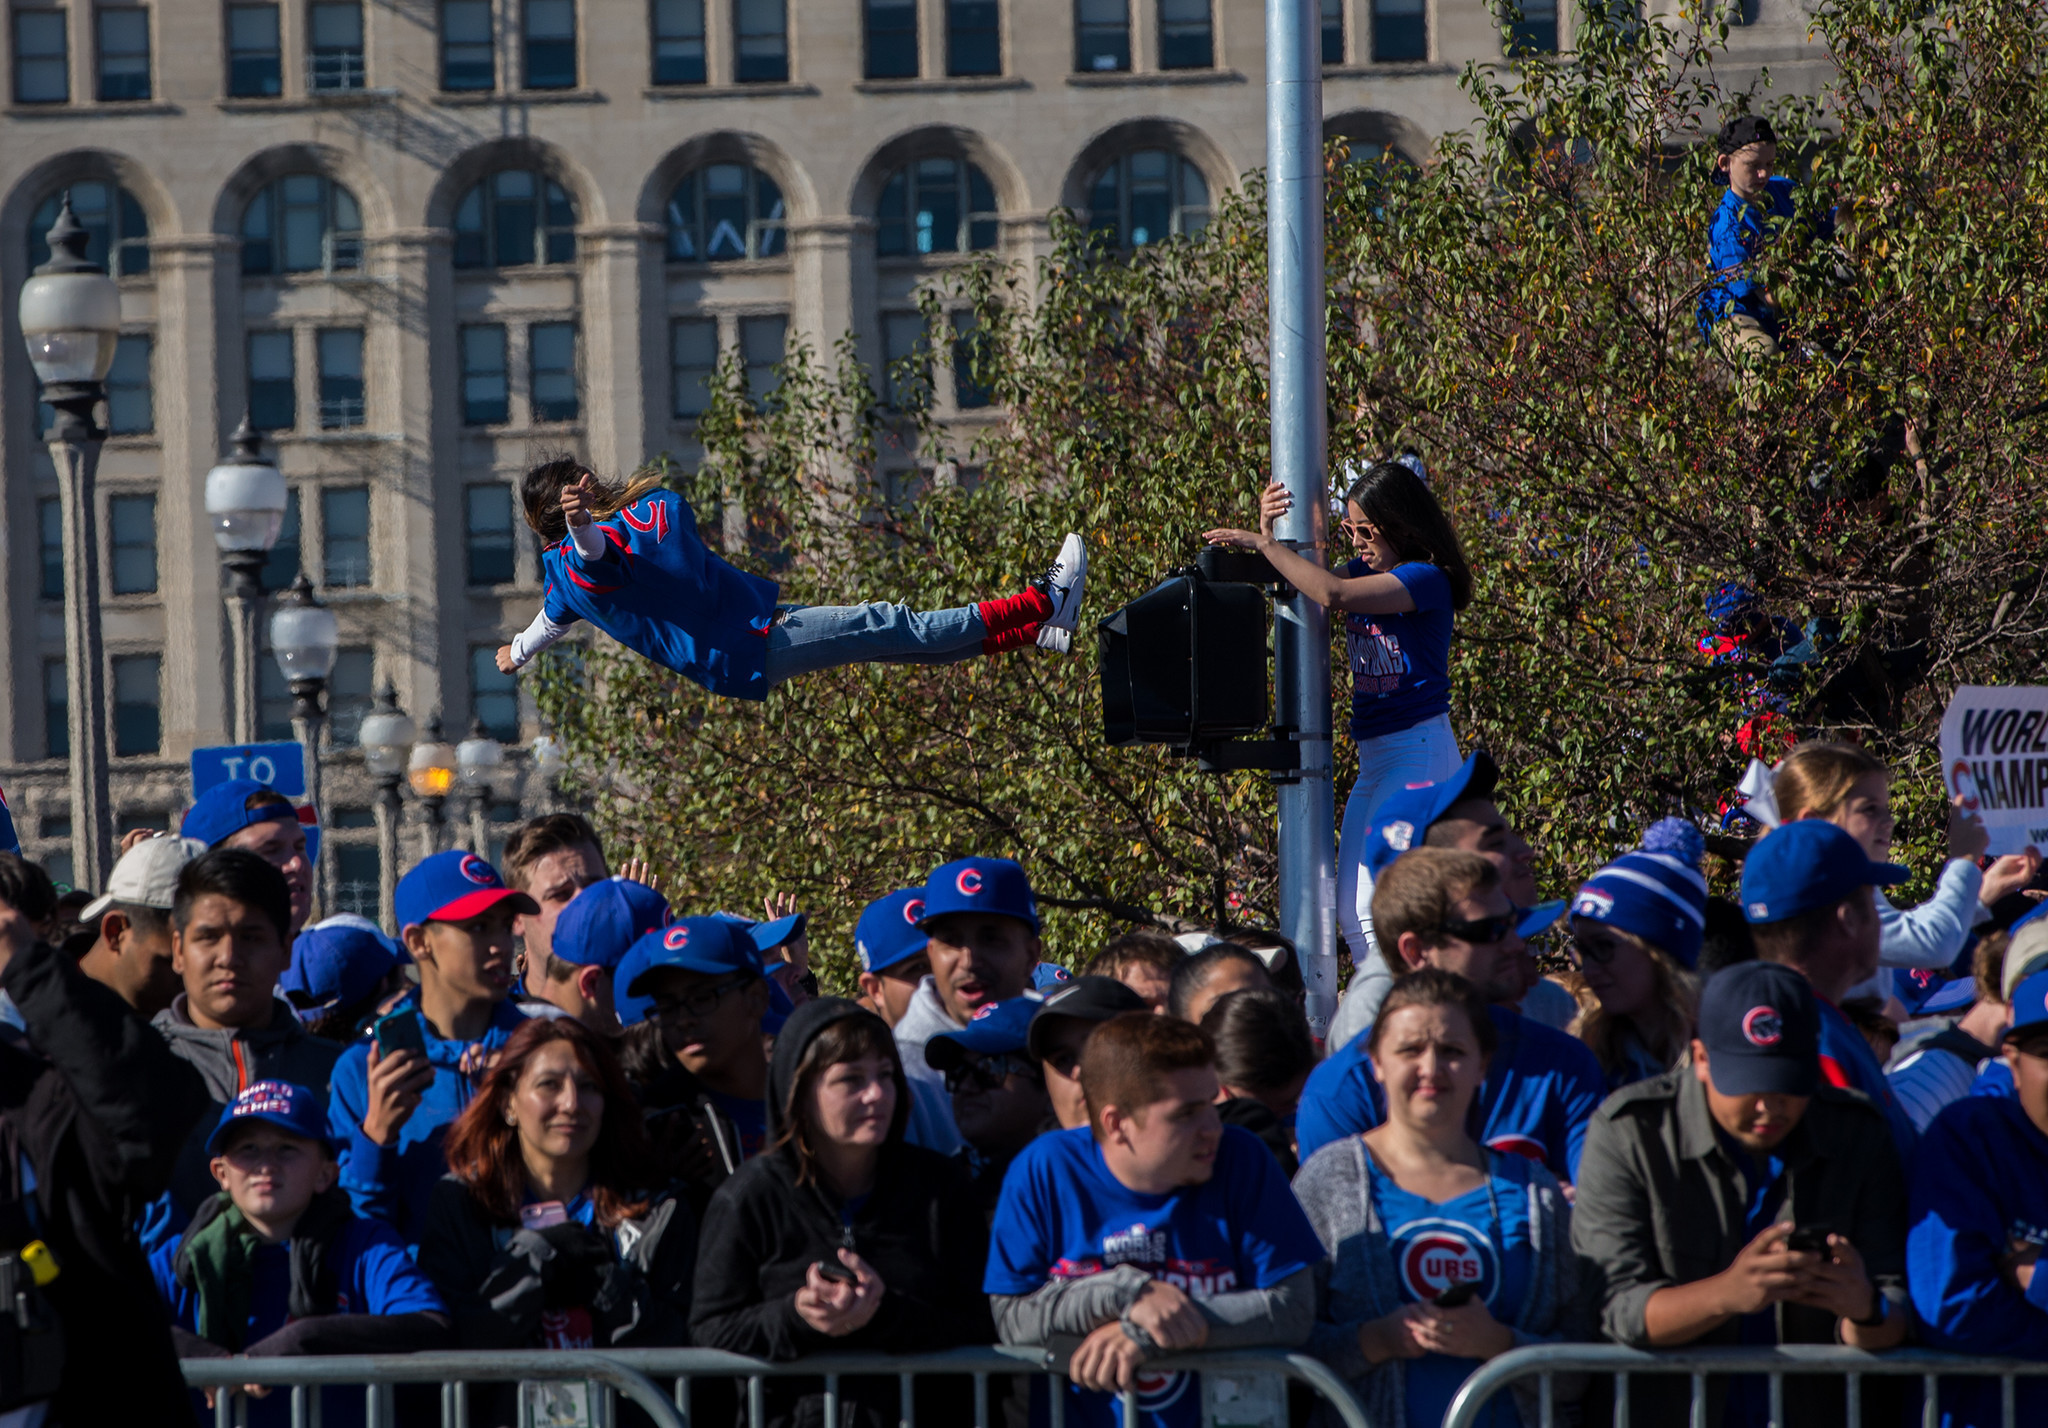 Millions at Wrigley downtown for Cubs World Series parade rally